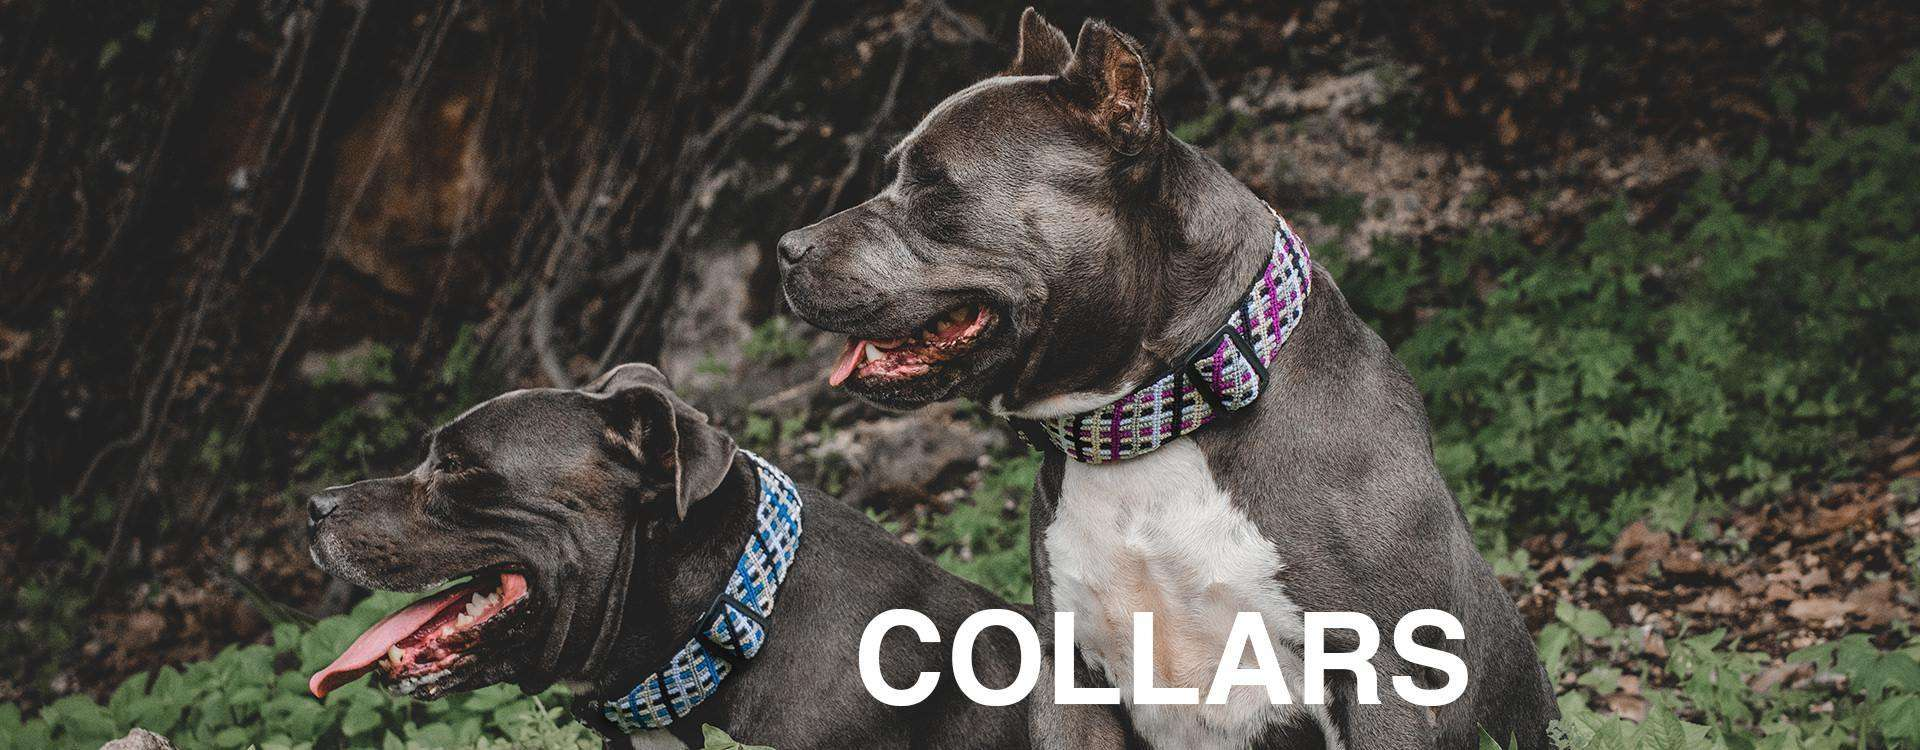 Two panting Pitbulls wearing ethical fashion dog collars in matching designs sit among bushes and look to the left